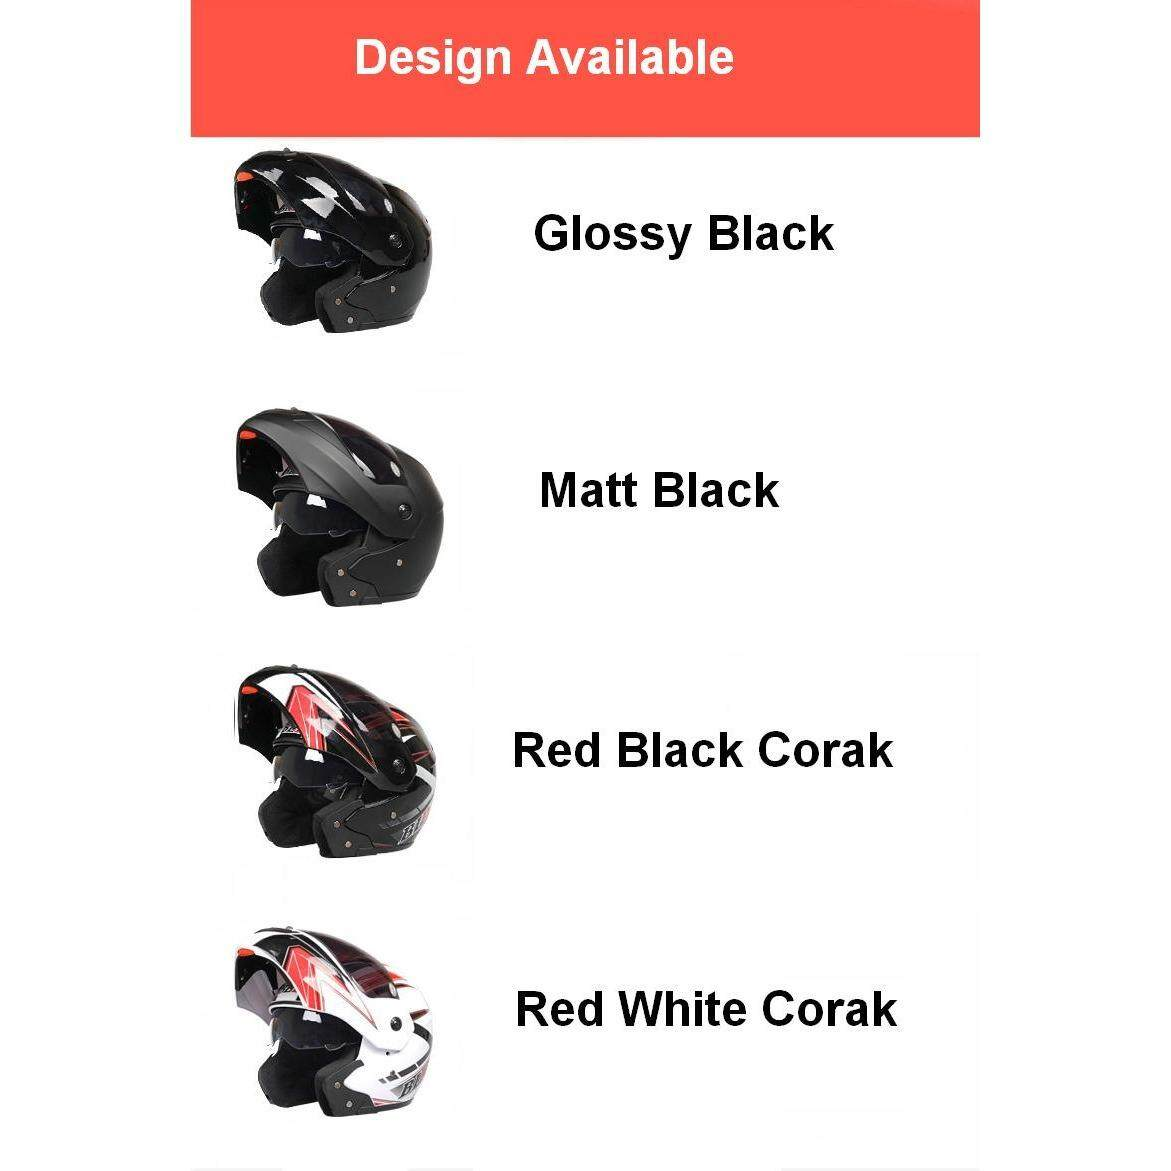 Full Face Motorcycle Helmet Semi Open Face Function Universal Usage Washable Value Pack